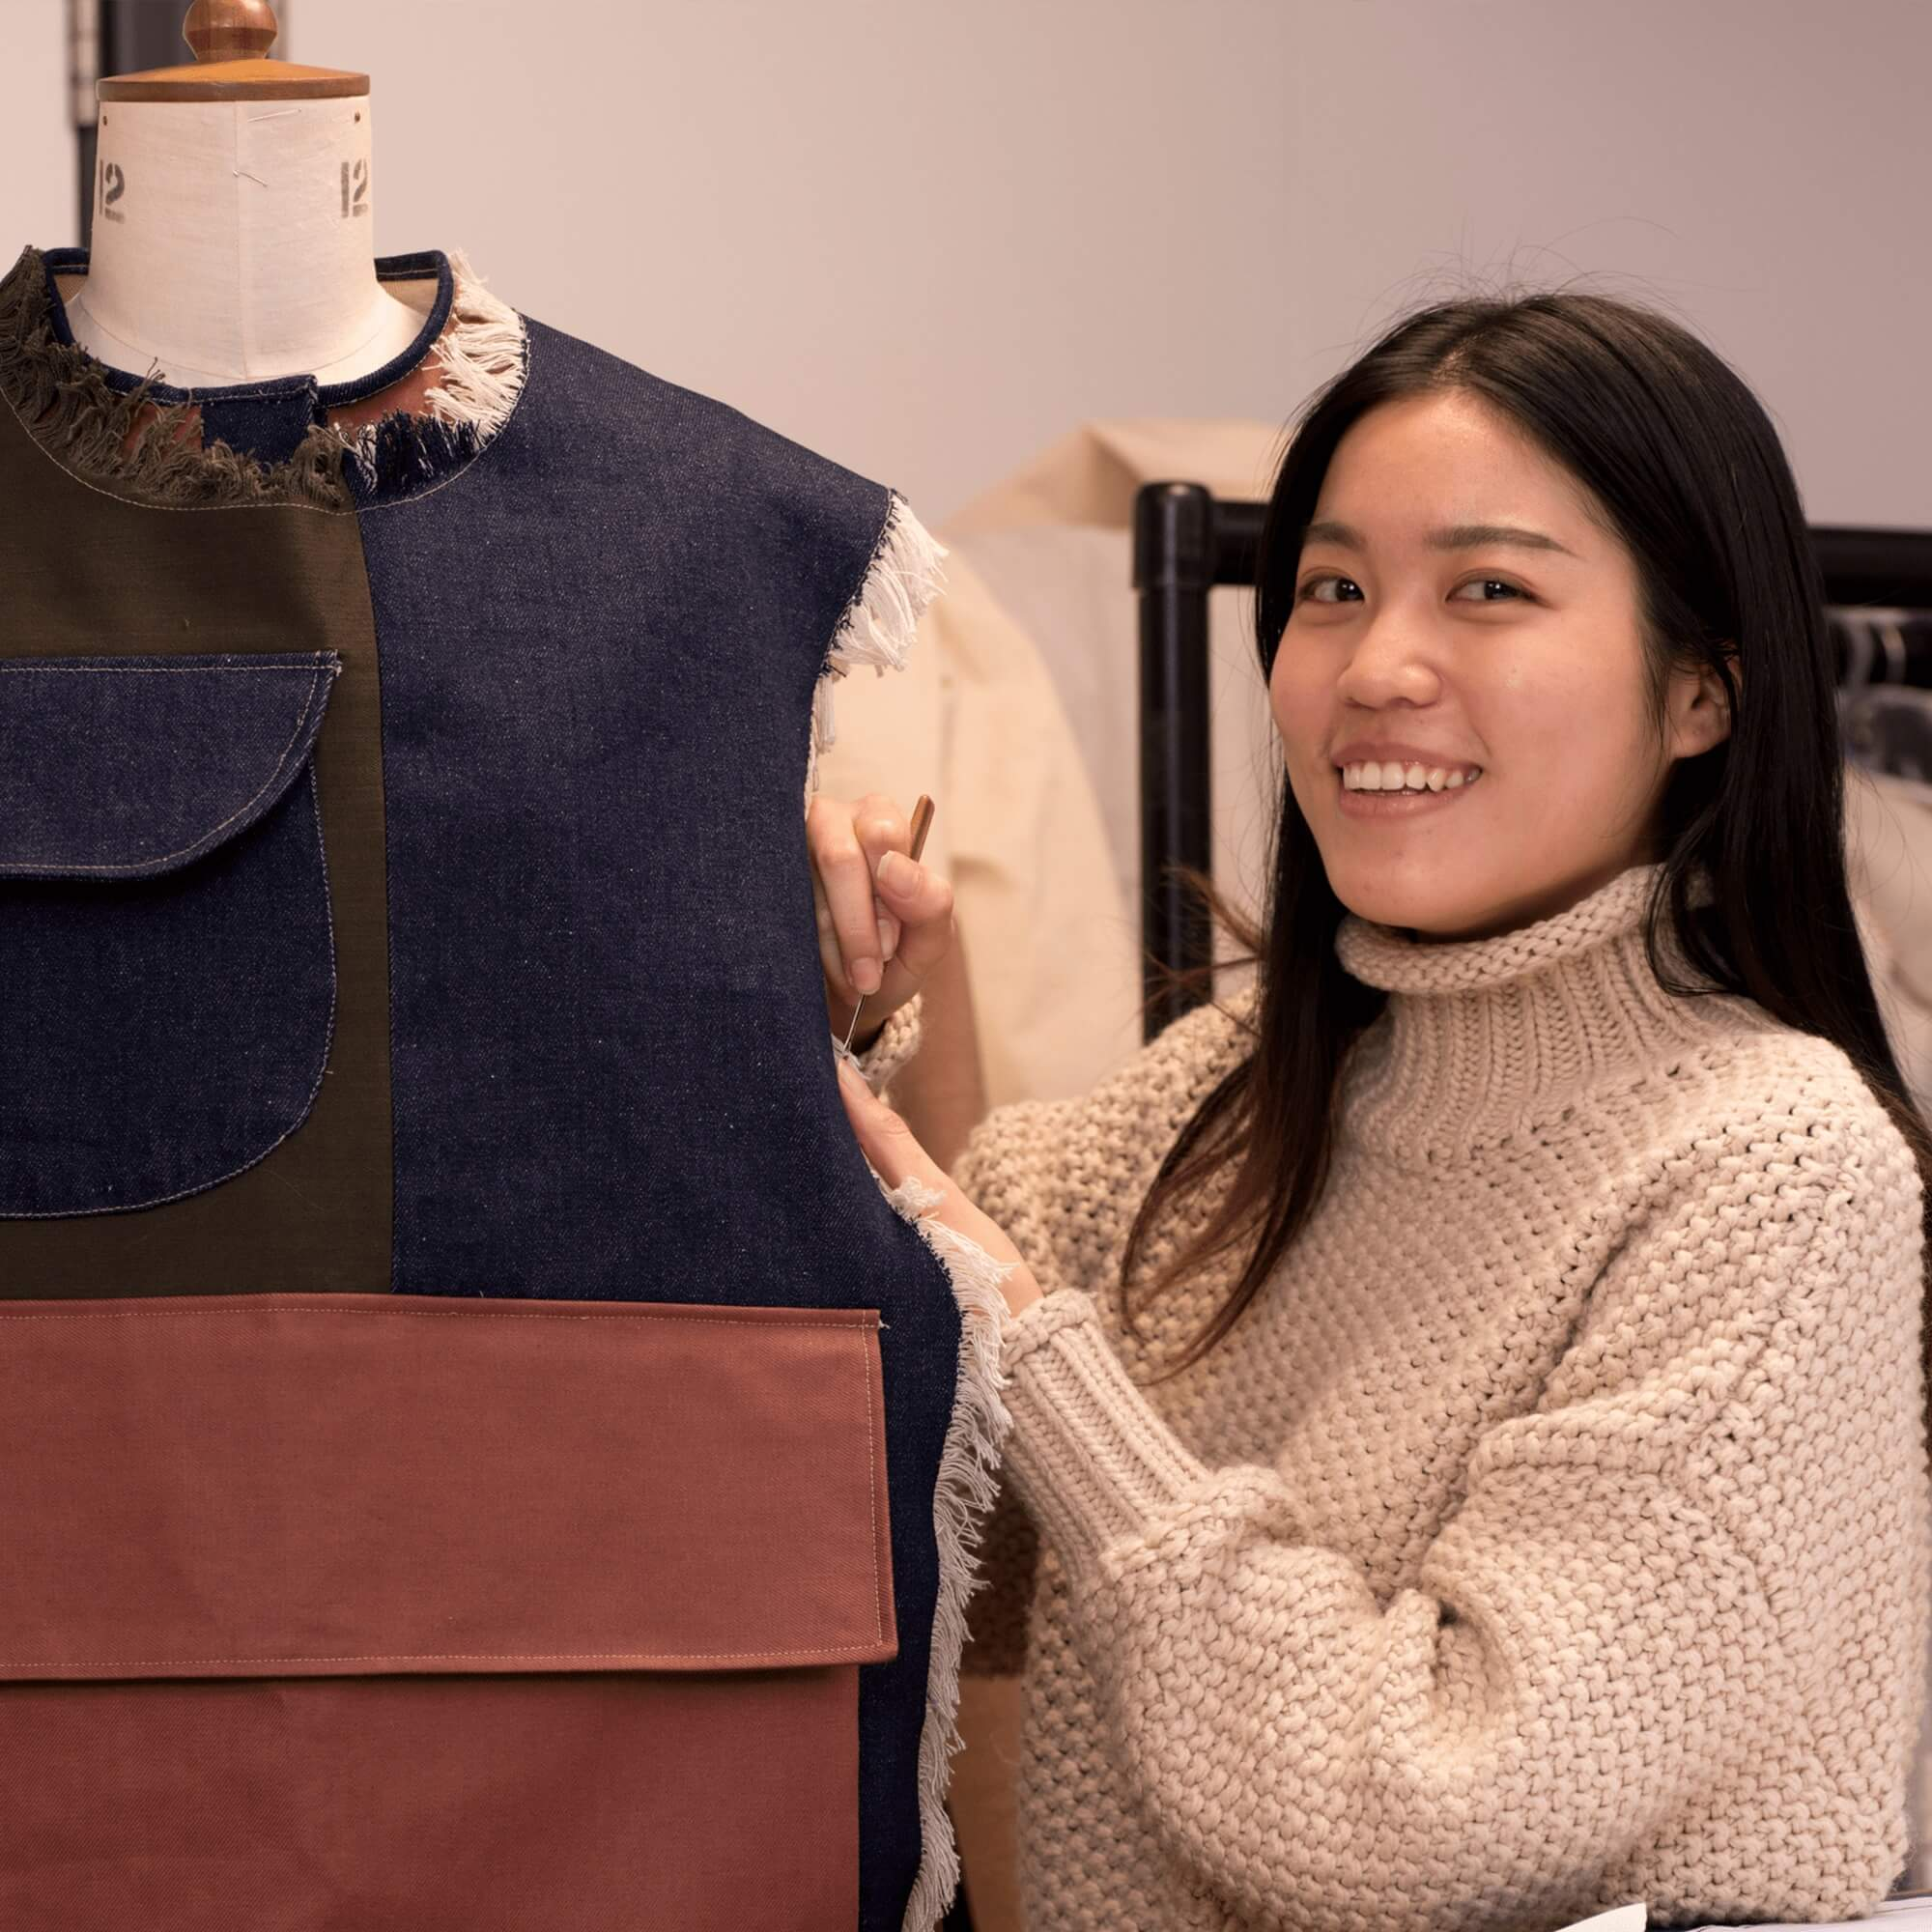 A international student beside her fashion course project work